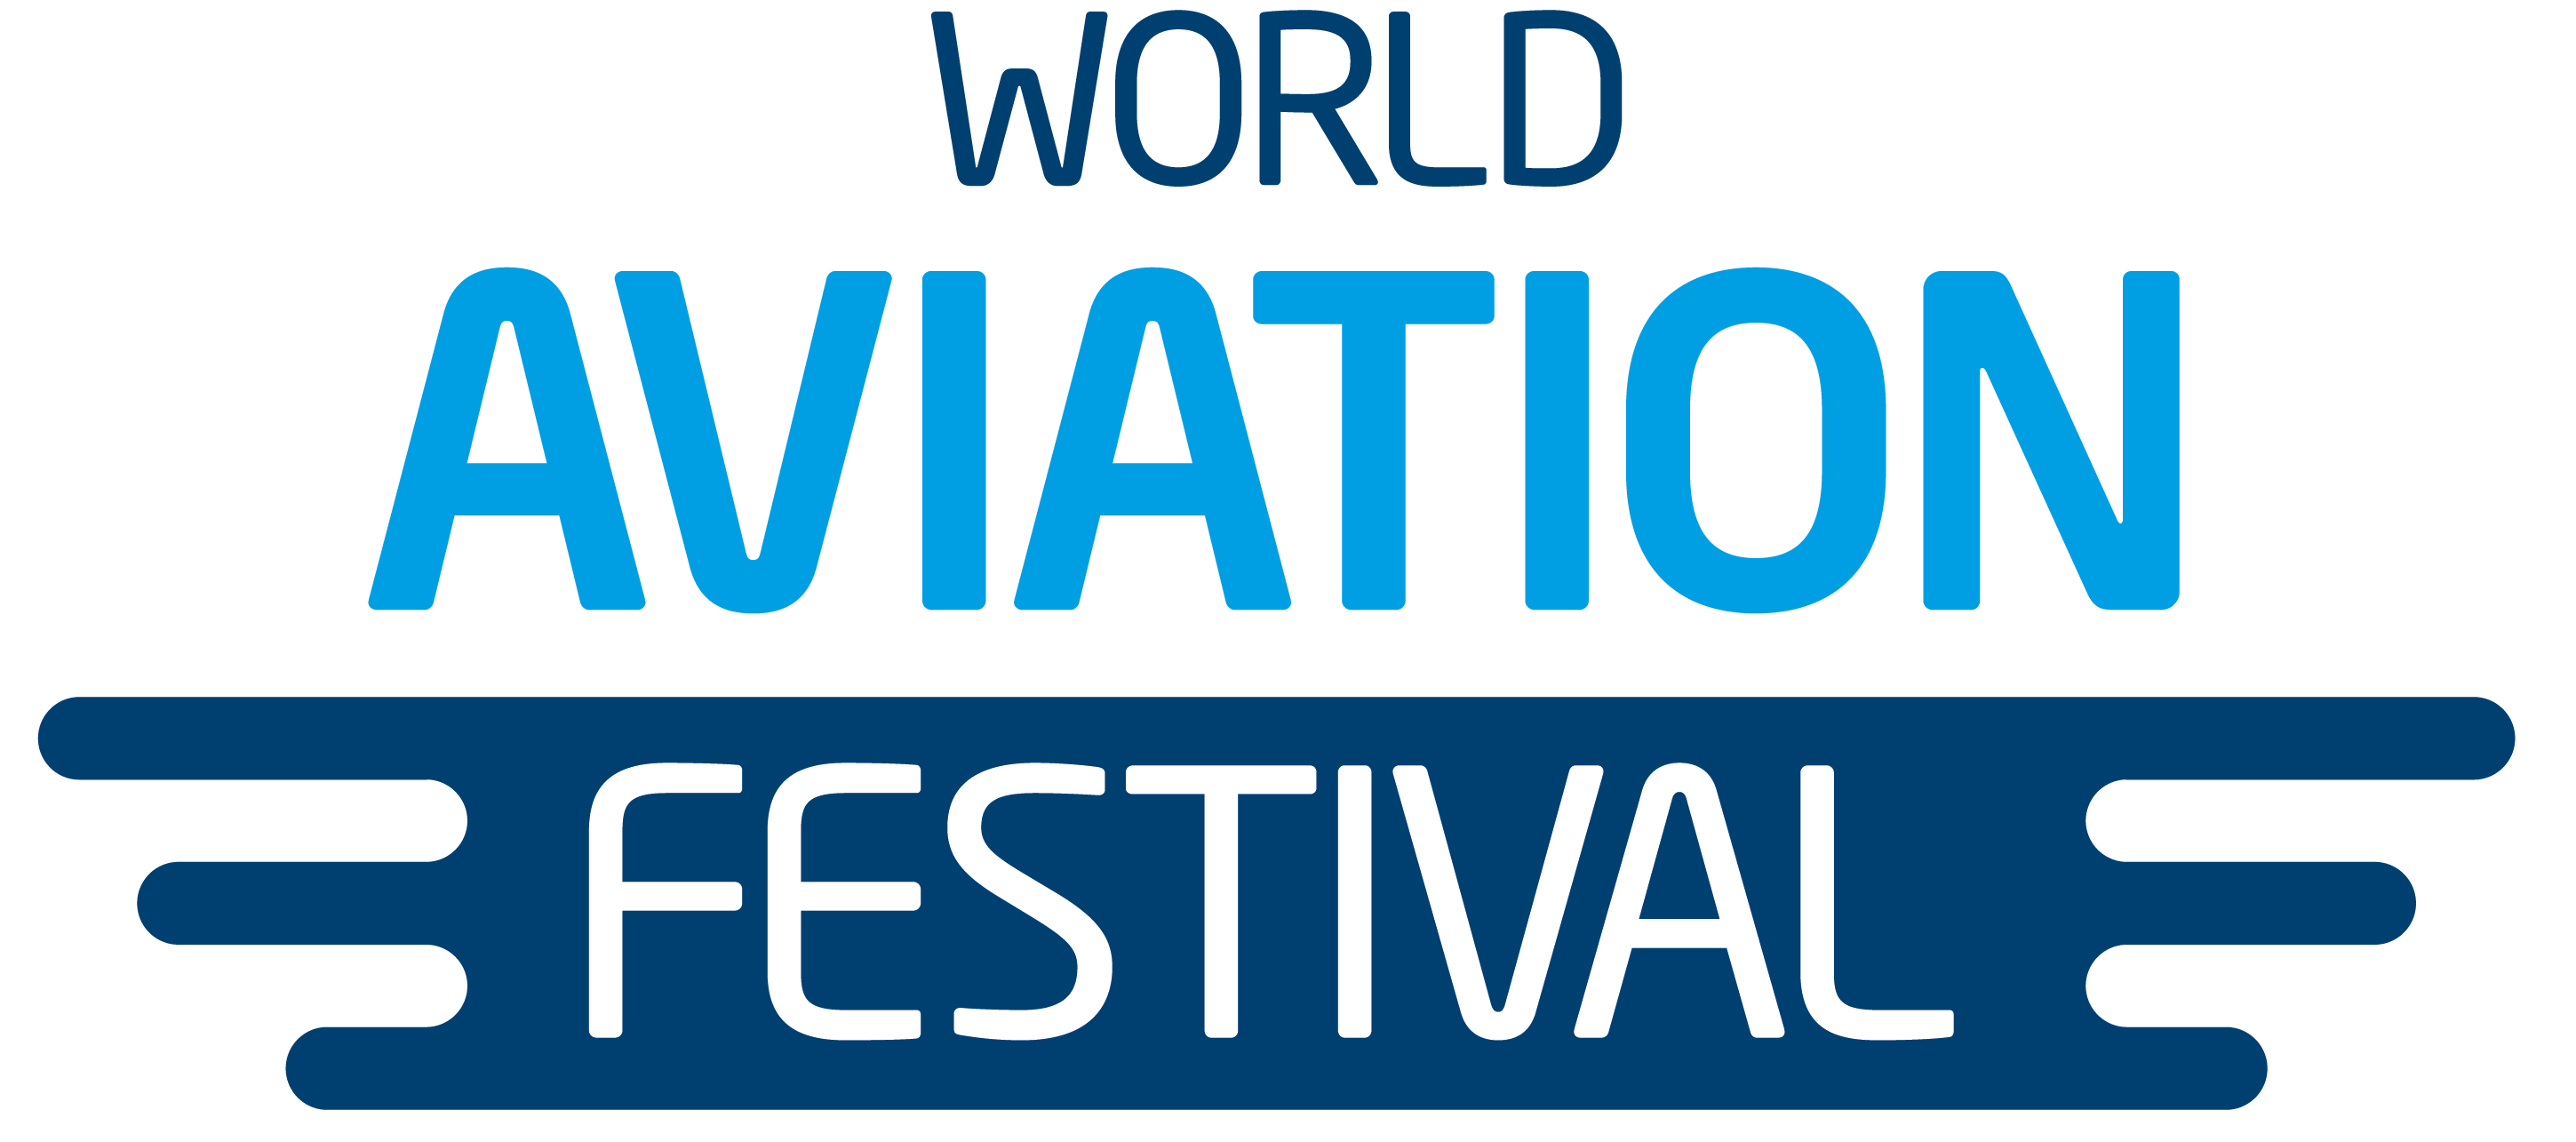 World Aviation Festival Logo png